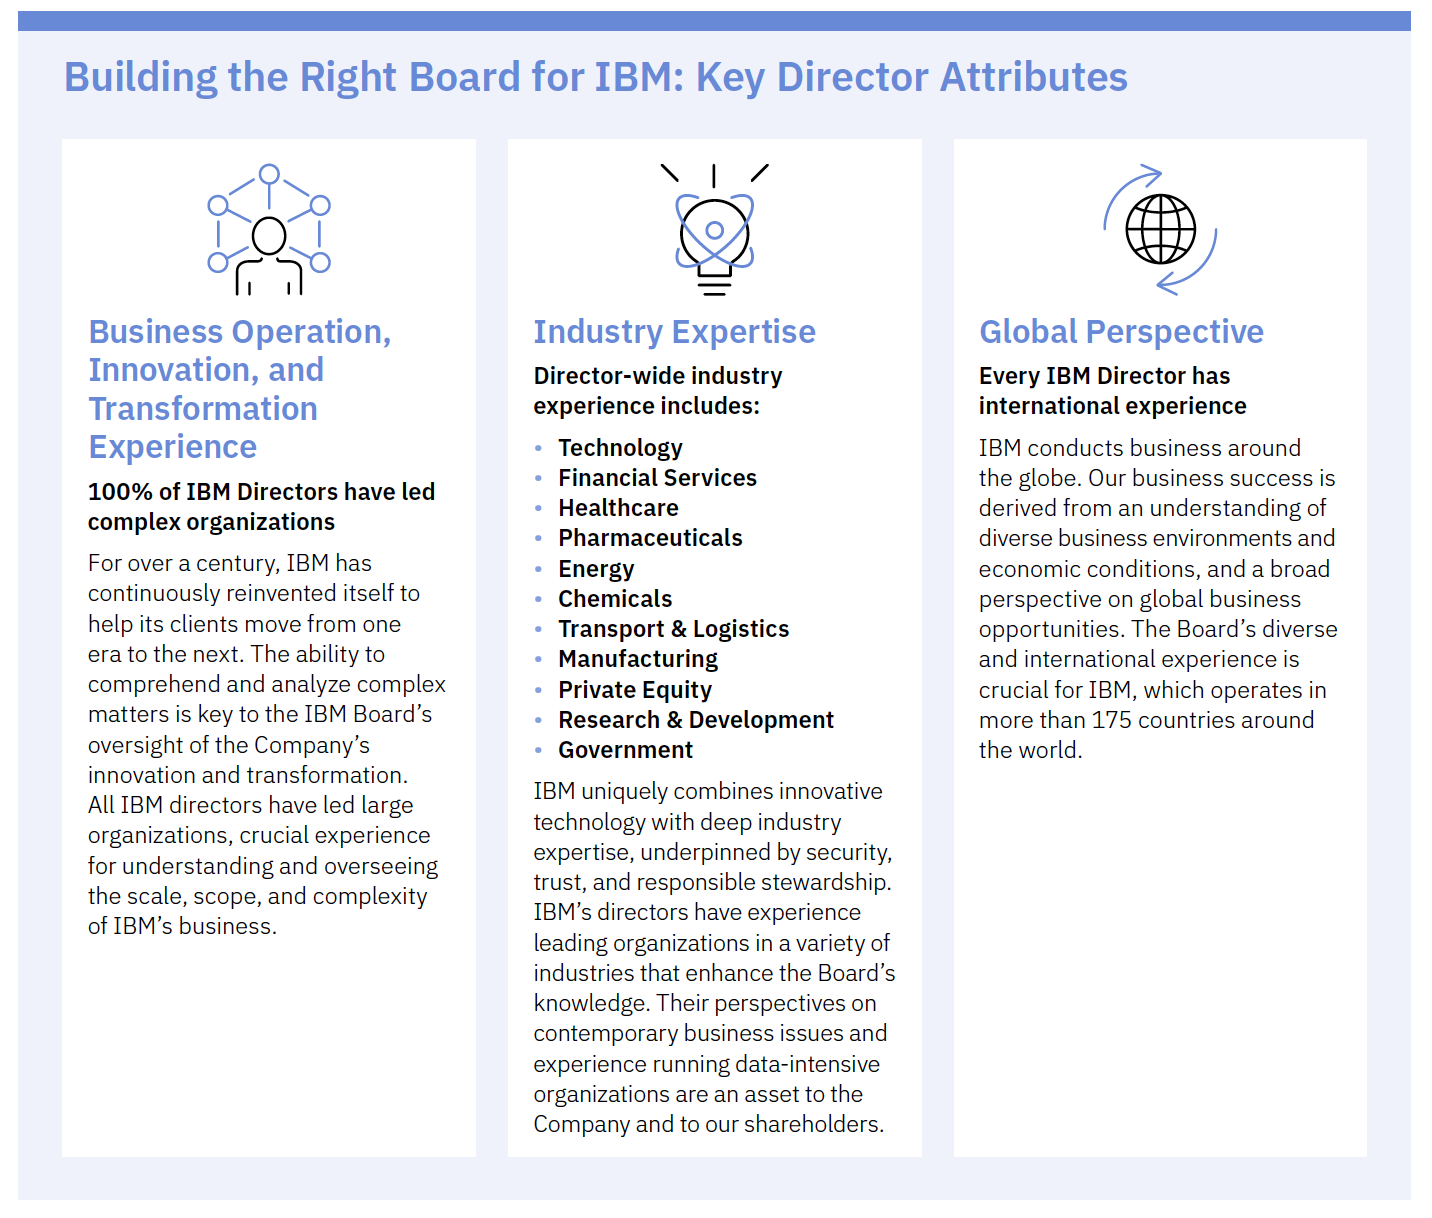 IBM Investor relations - Corporate governance | IBM Board of